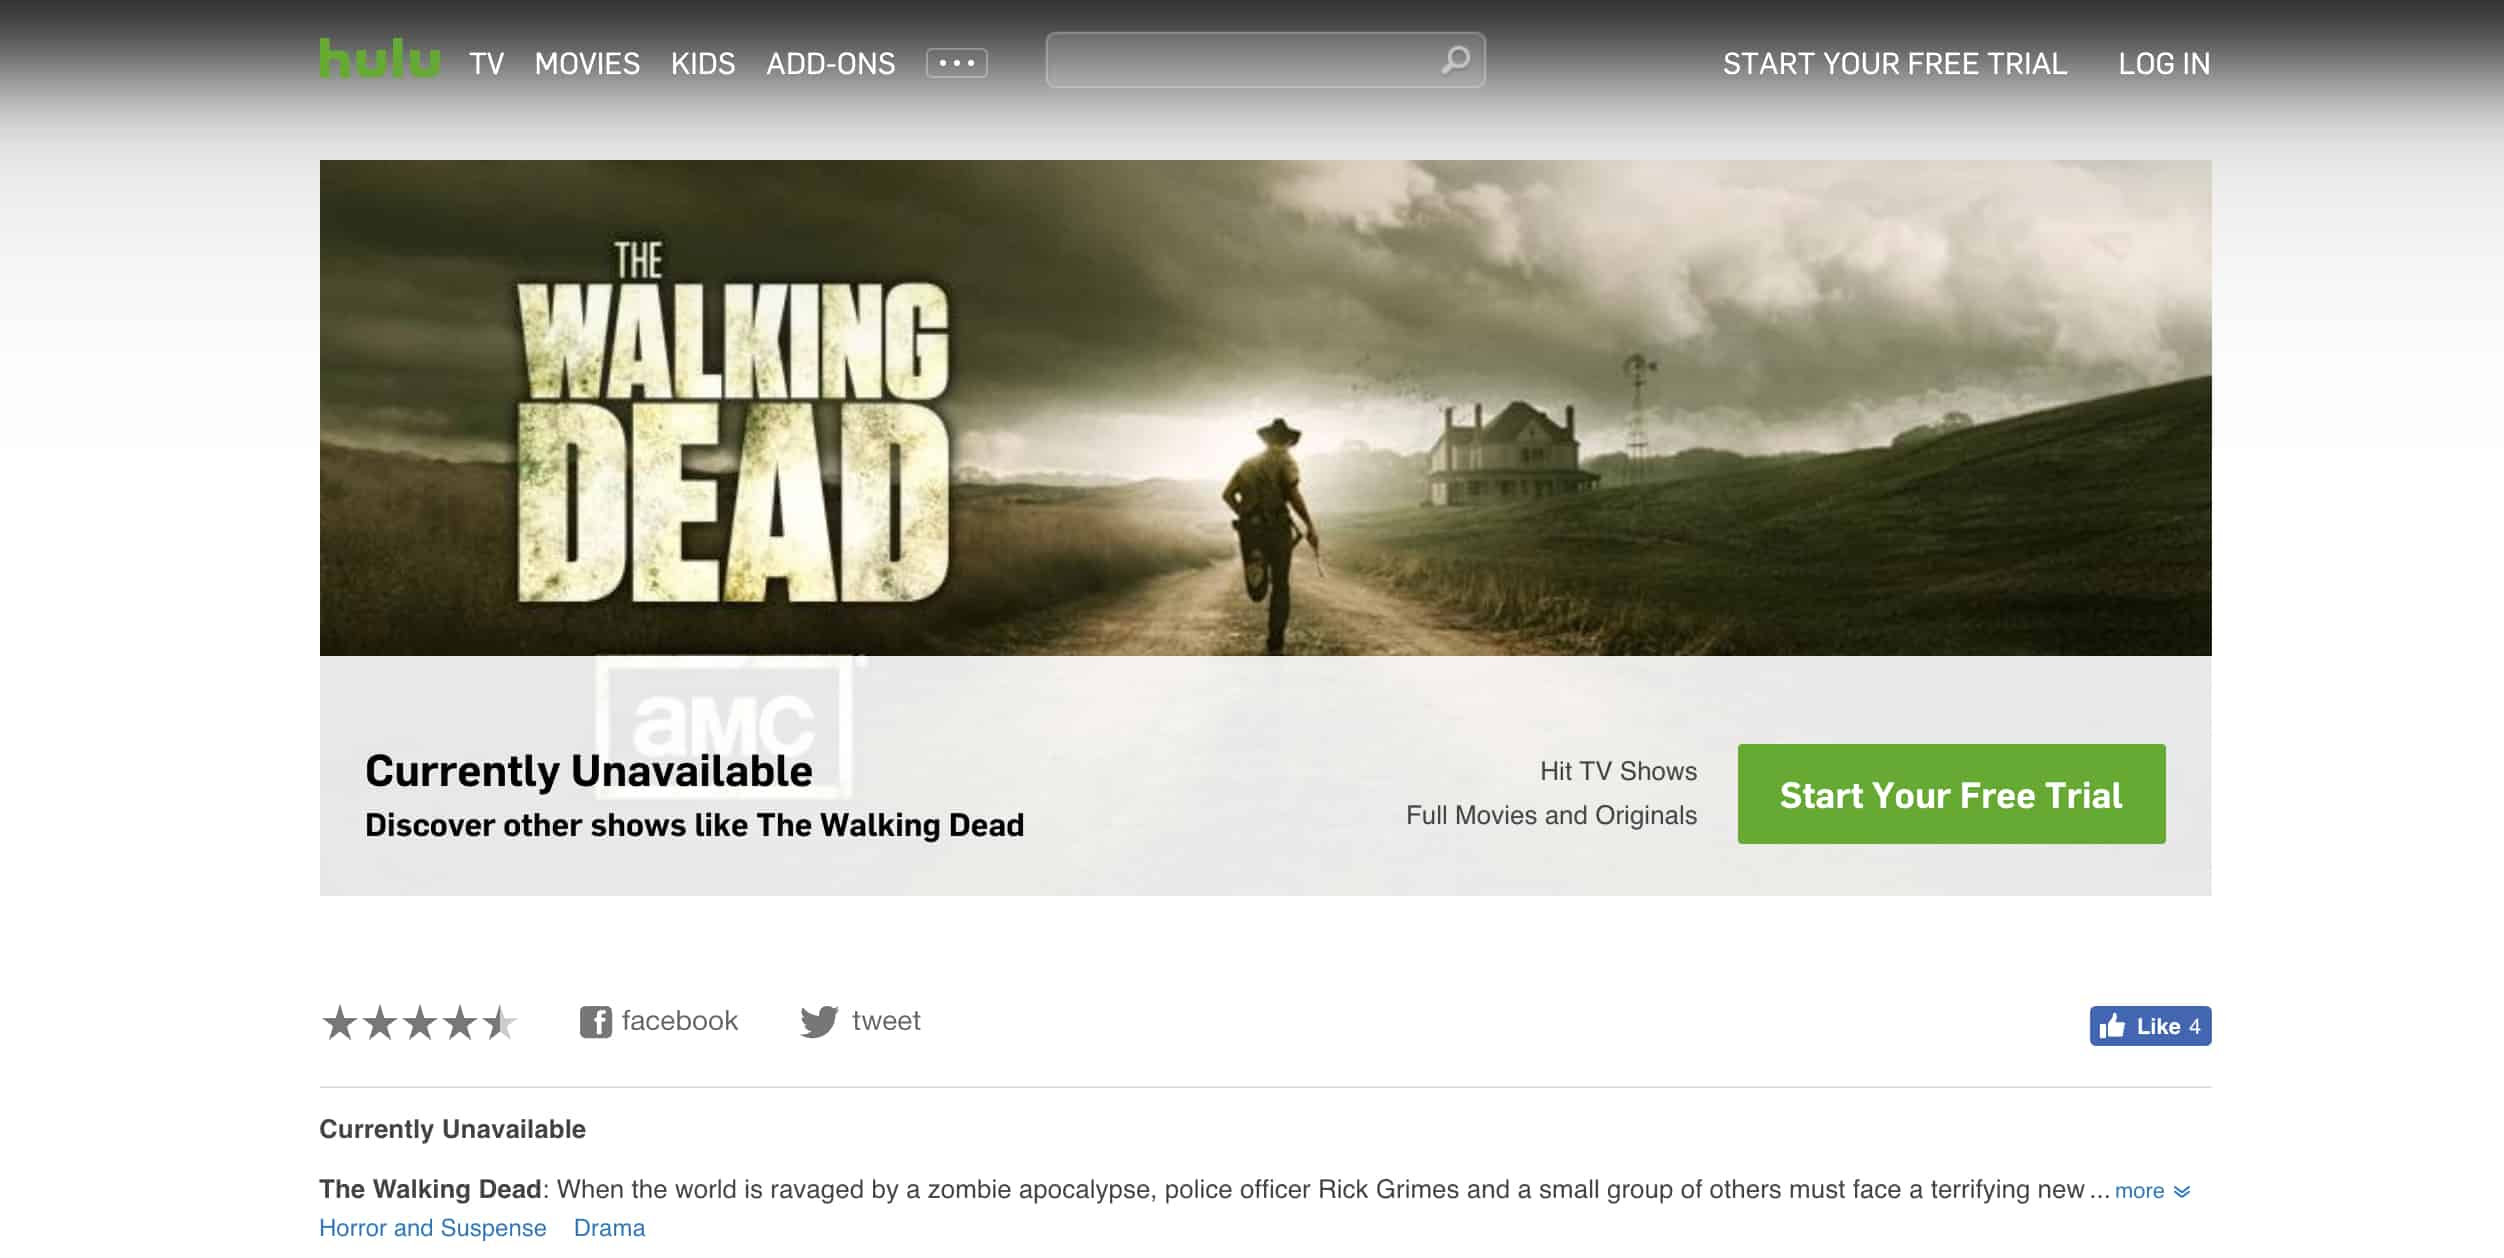 Watch The Walking Dead Online? Free & Paid Streaming Options